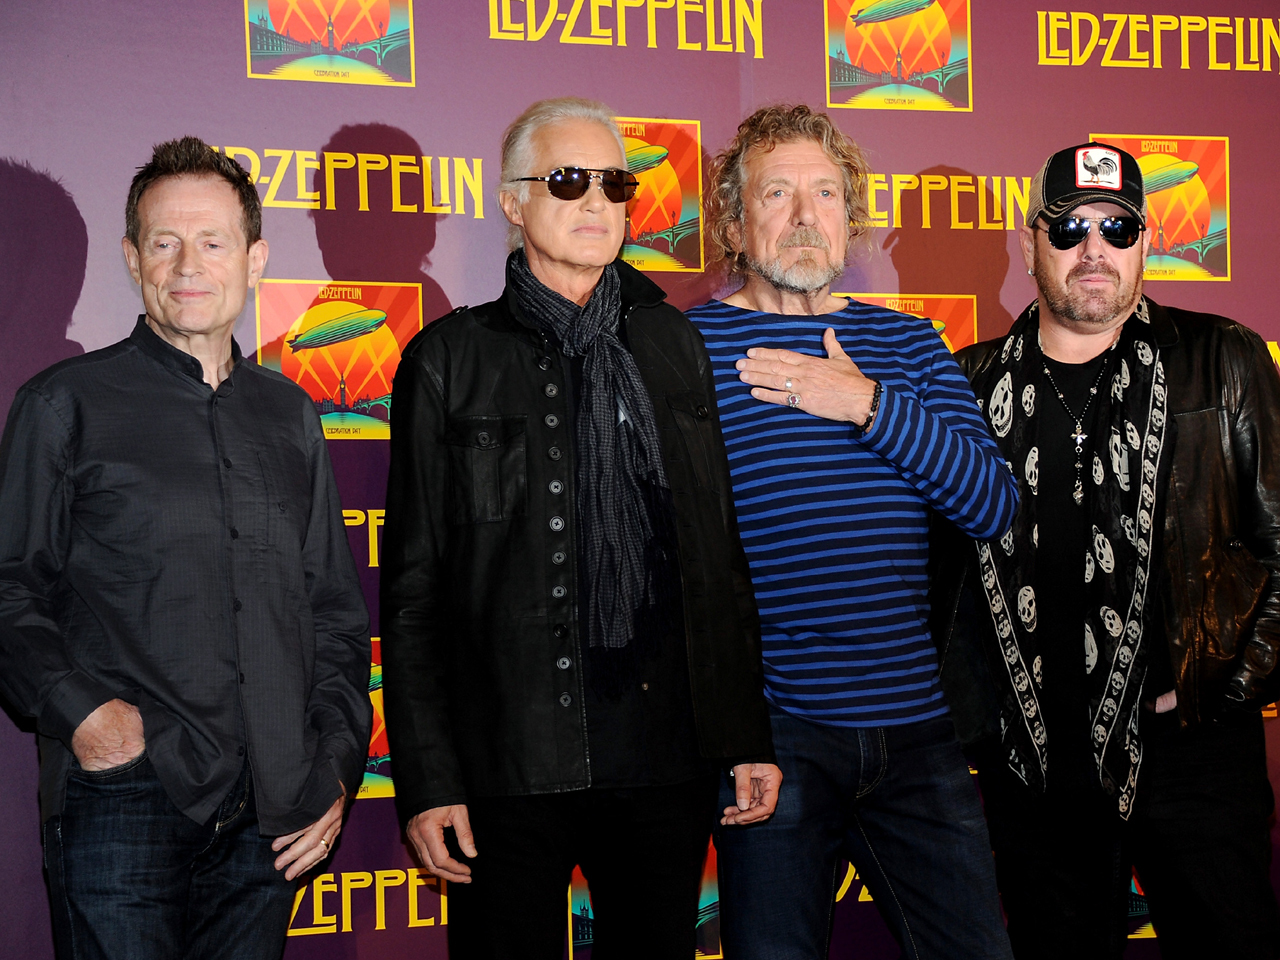 led zeppelin rules out reunion tour for now cbs news. Black Bedroom Furniture Sets. Home Design Ideas